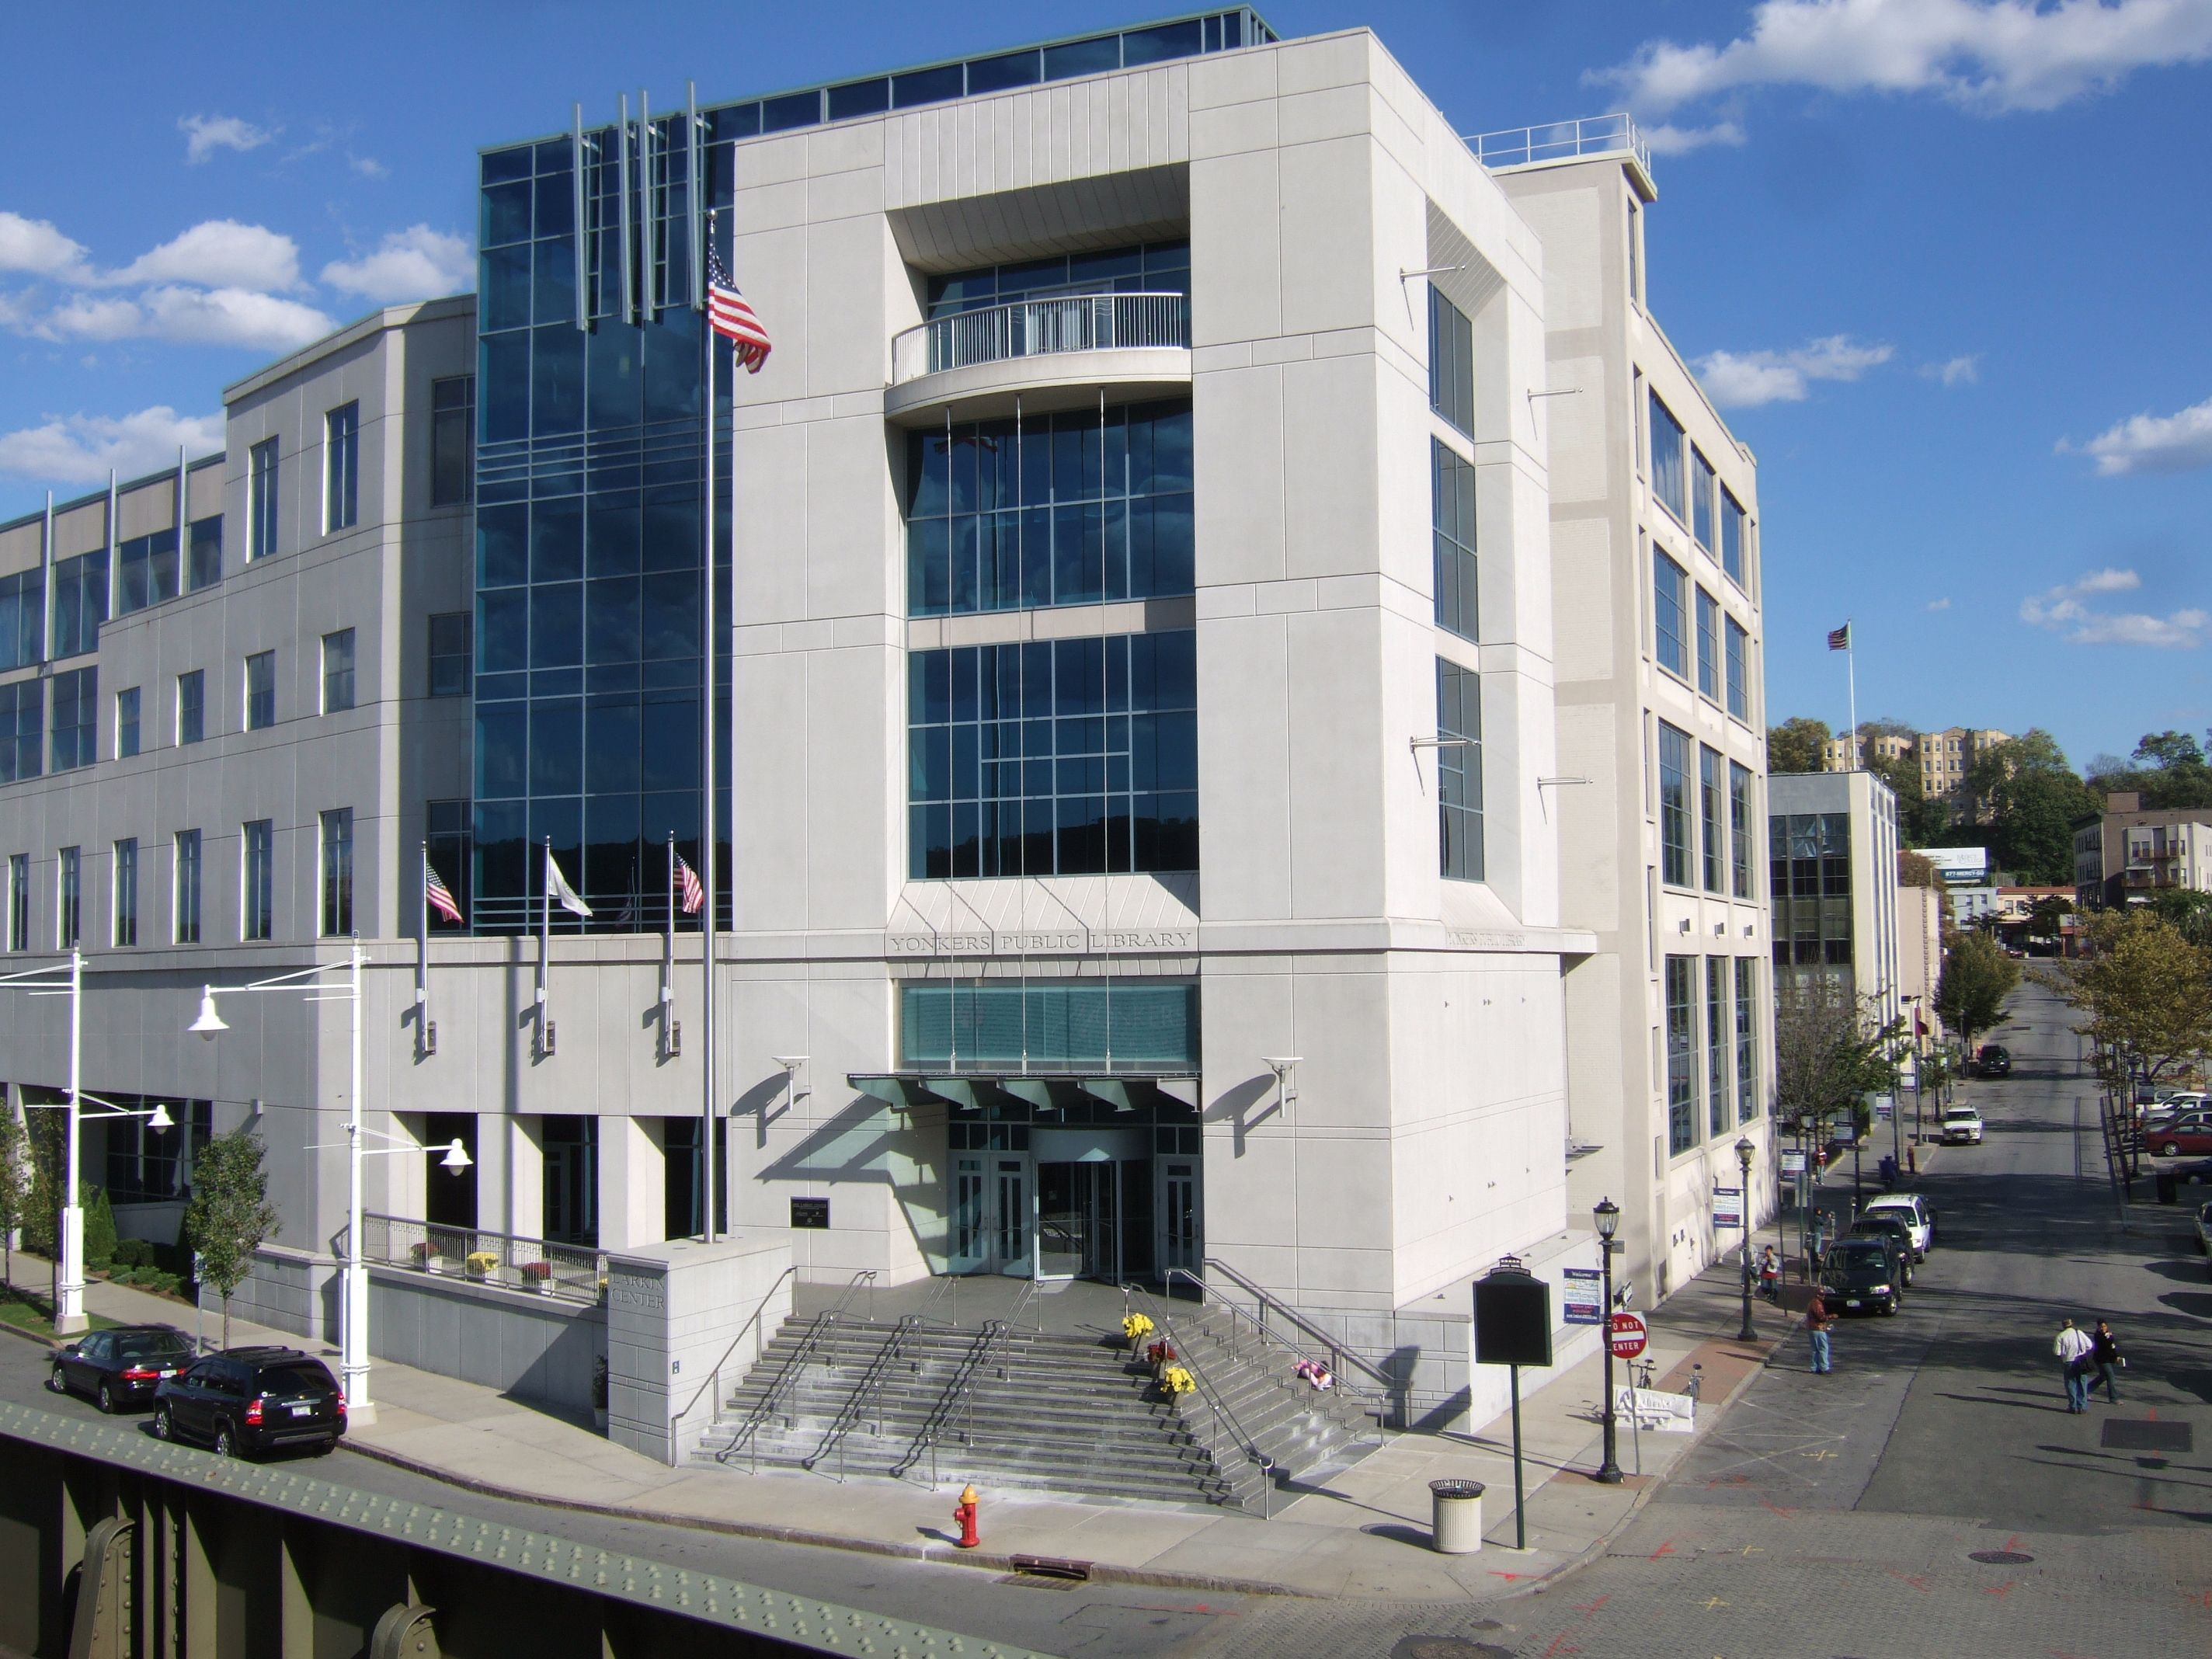 Yonkers Parking Tickets >> The Riverfront Library In Yonkers 20 Minute Drive Away Limited